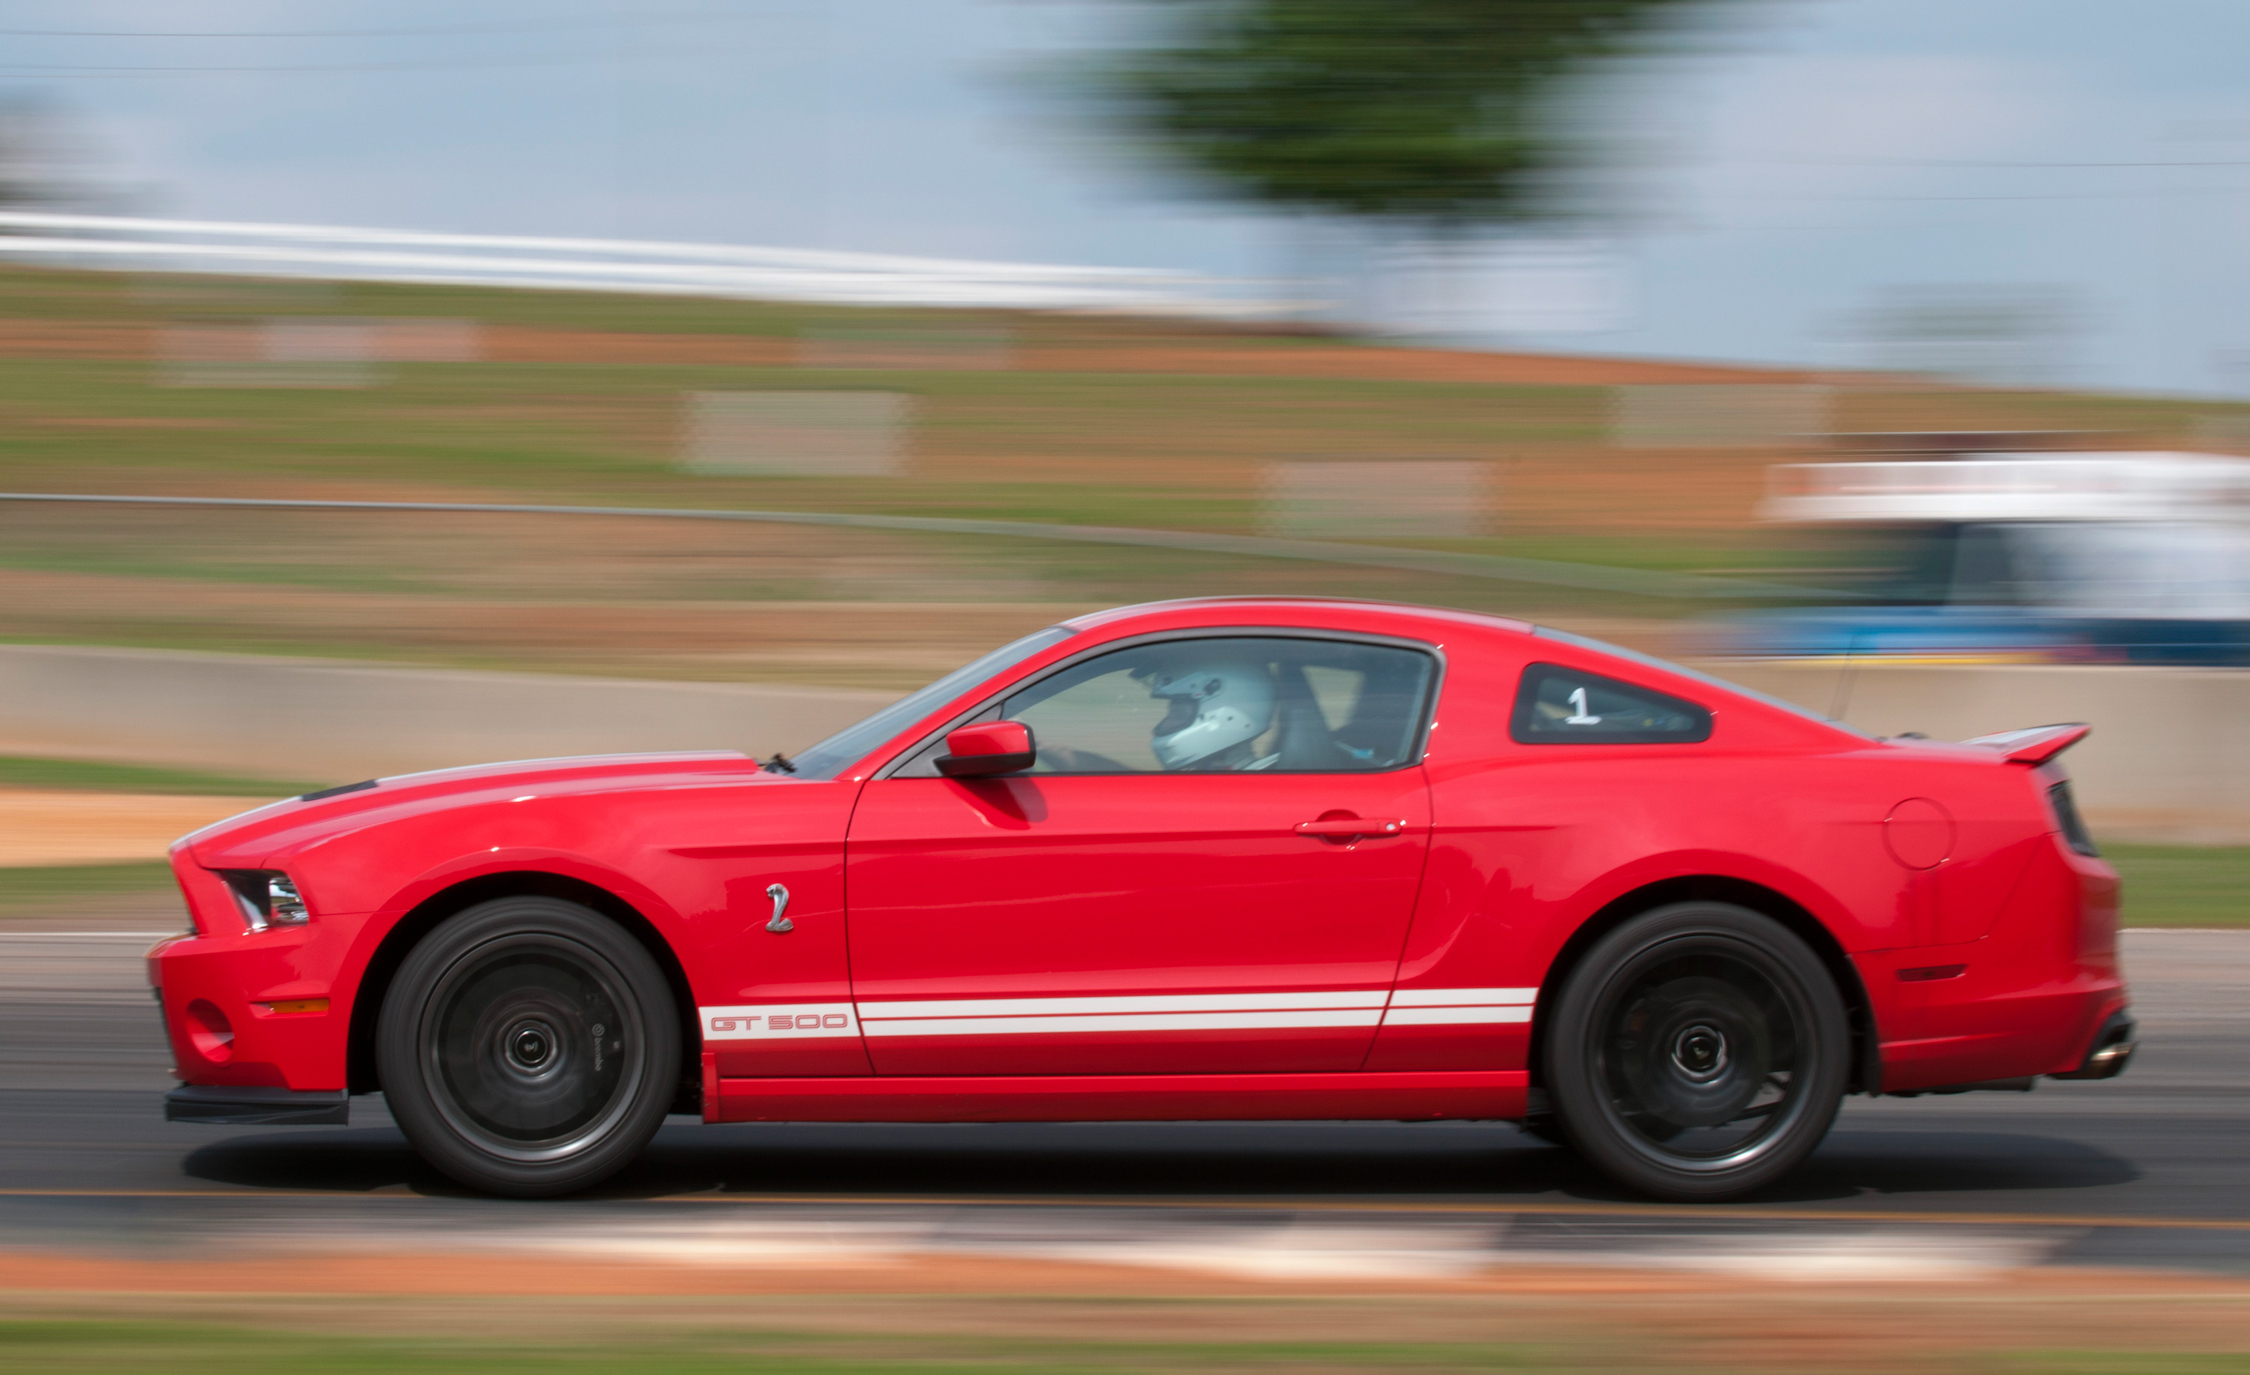 2013 Ford Mustang Shelby GT500 Red Test Drive (View 13 of 47)